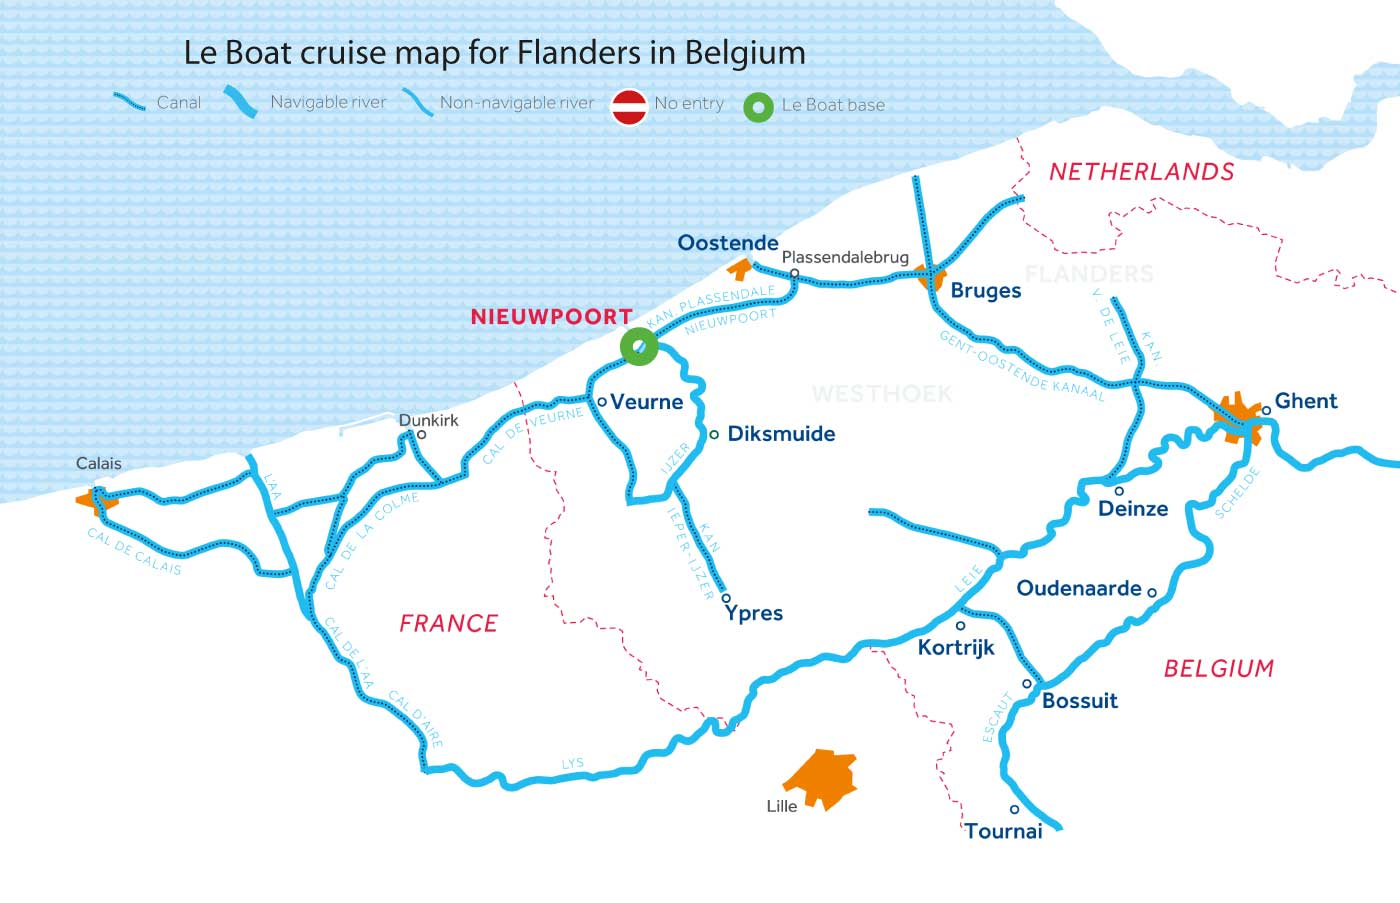 Cruise map of the rivers and canals in Flanders, Belgium